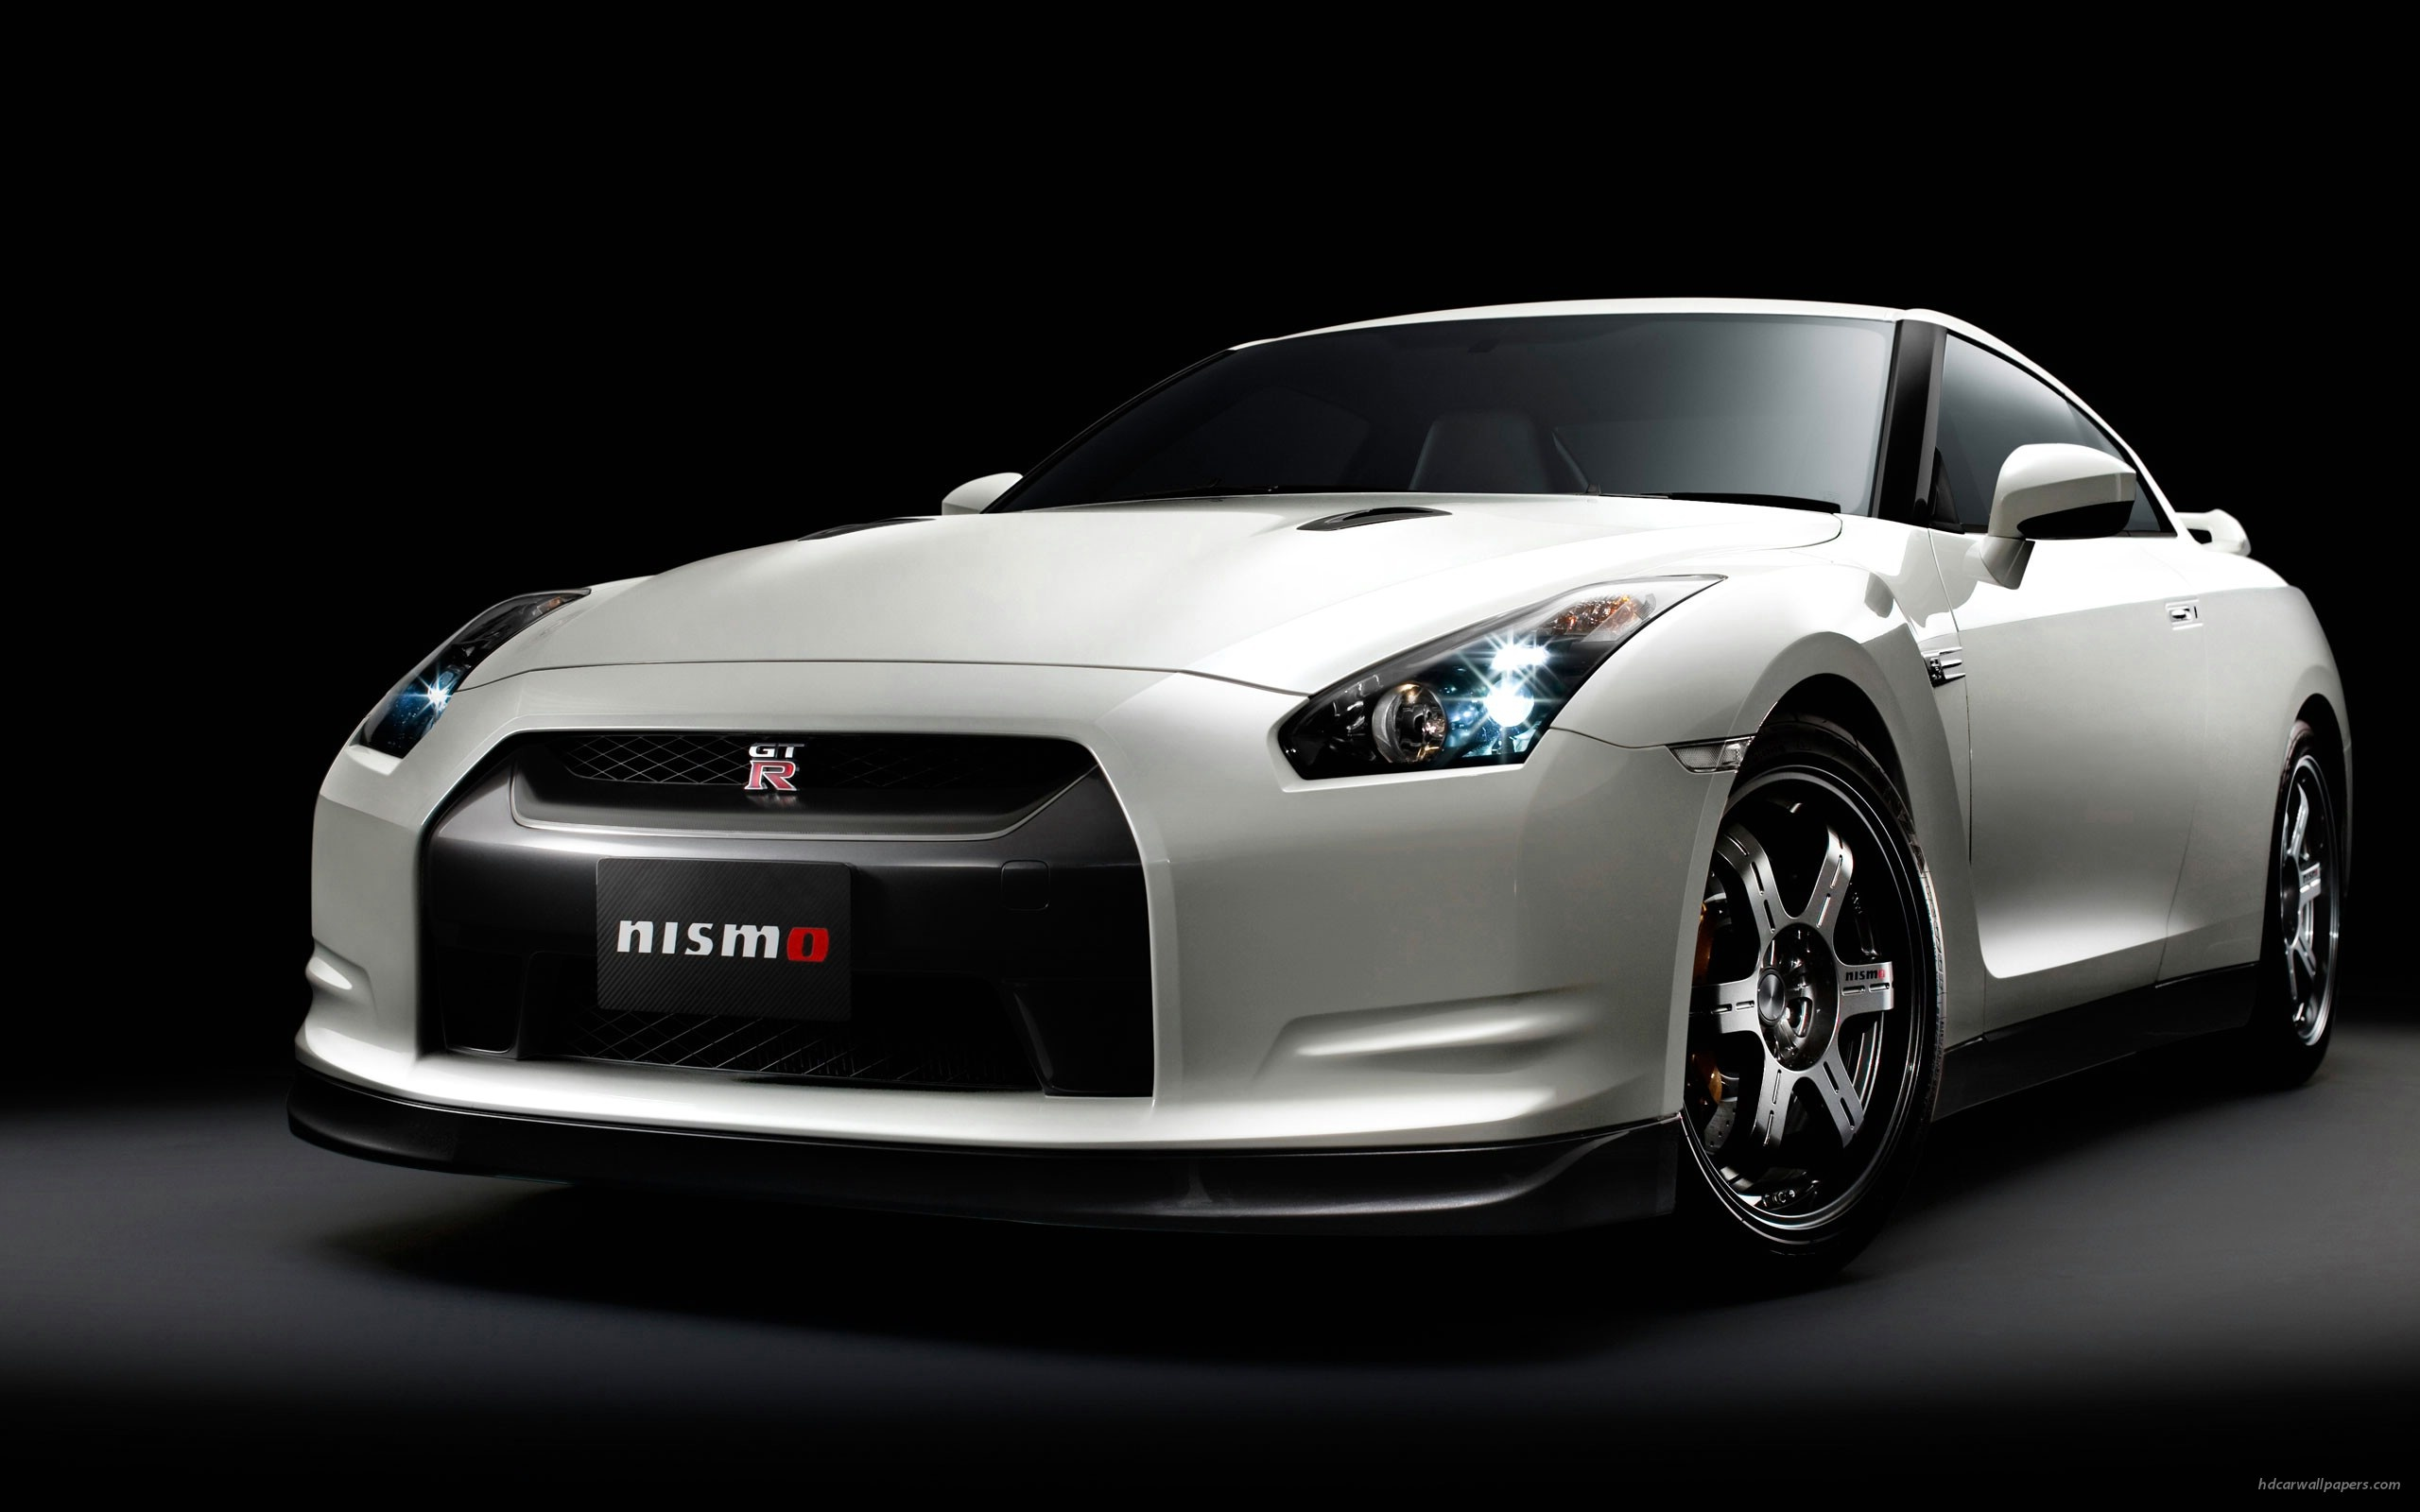 Nissan Gt R Nismo Club Sports Wallpapers In Jpg Format For Free Download